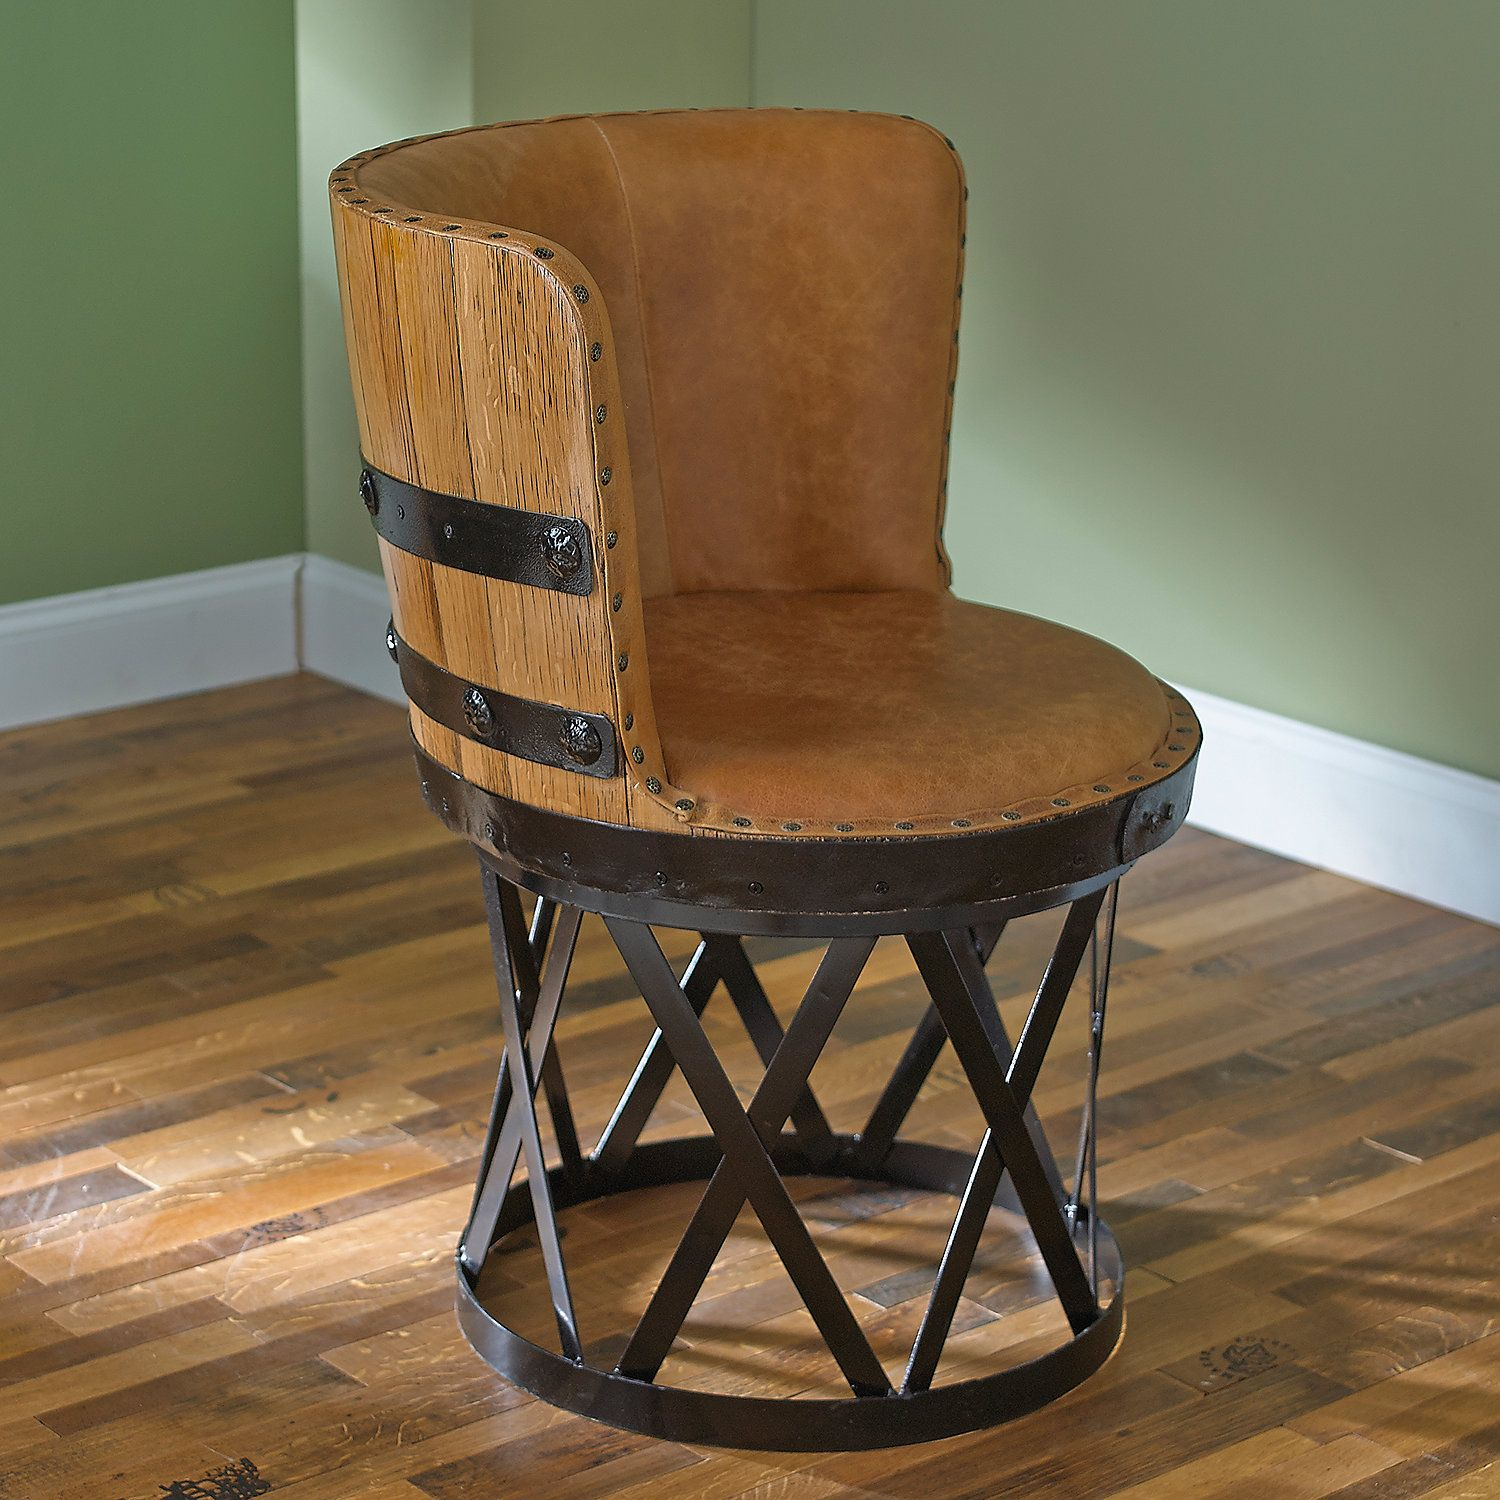 Wine Barrel Furniture Ideas You Can DIY or BUY (135 PHOTOS ...